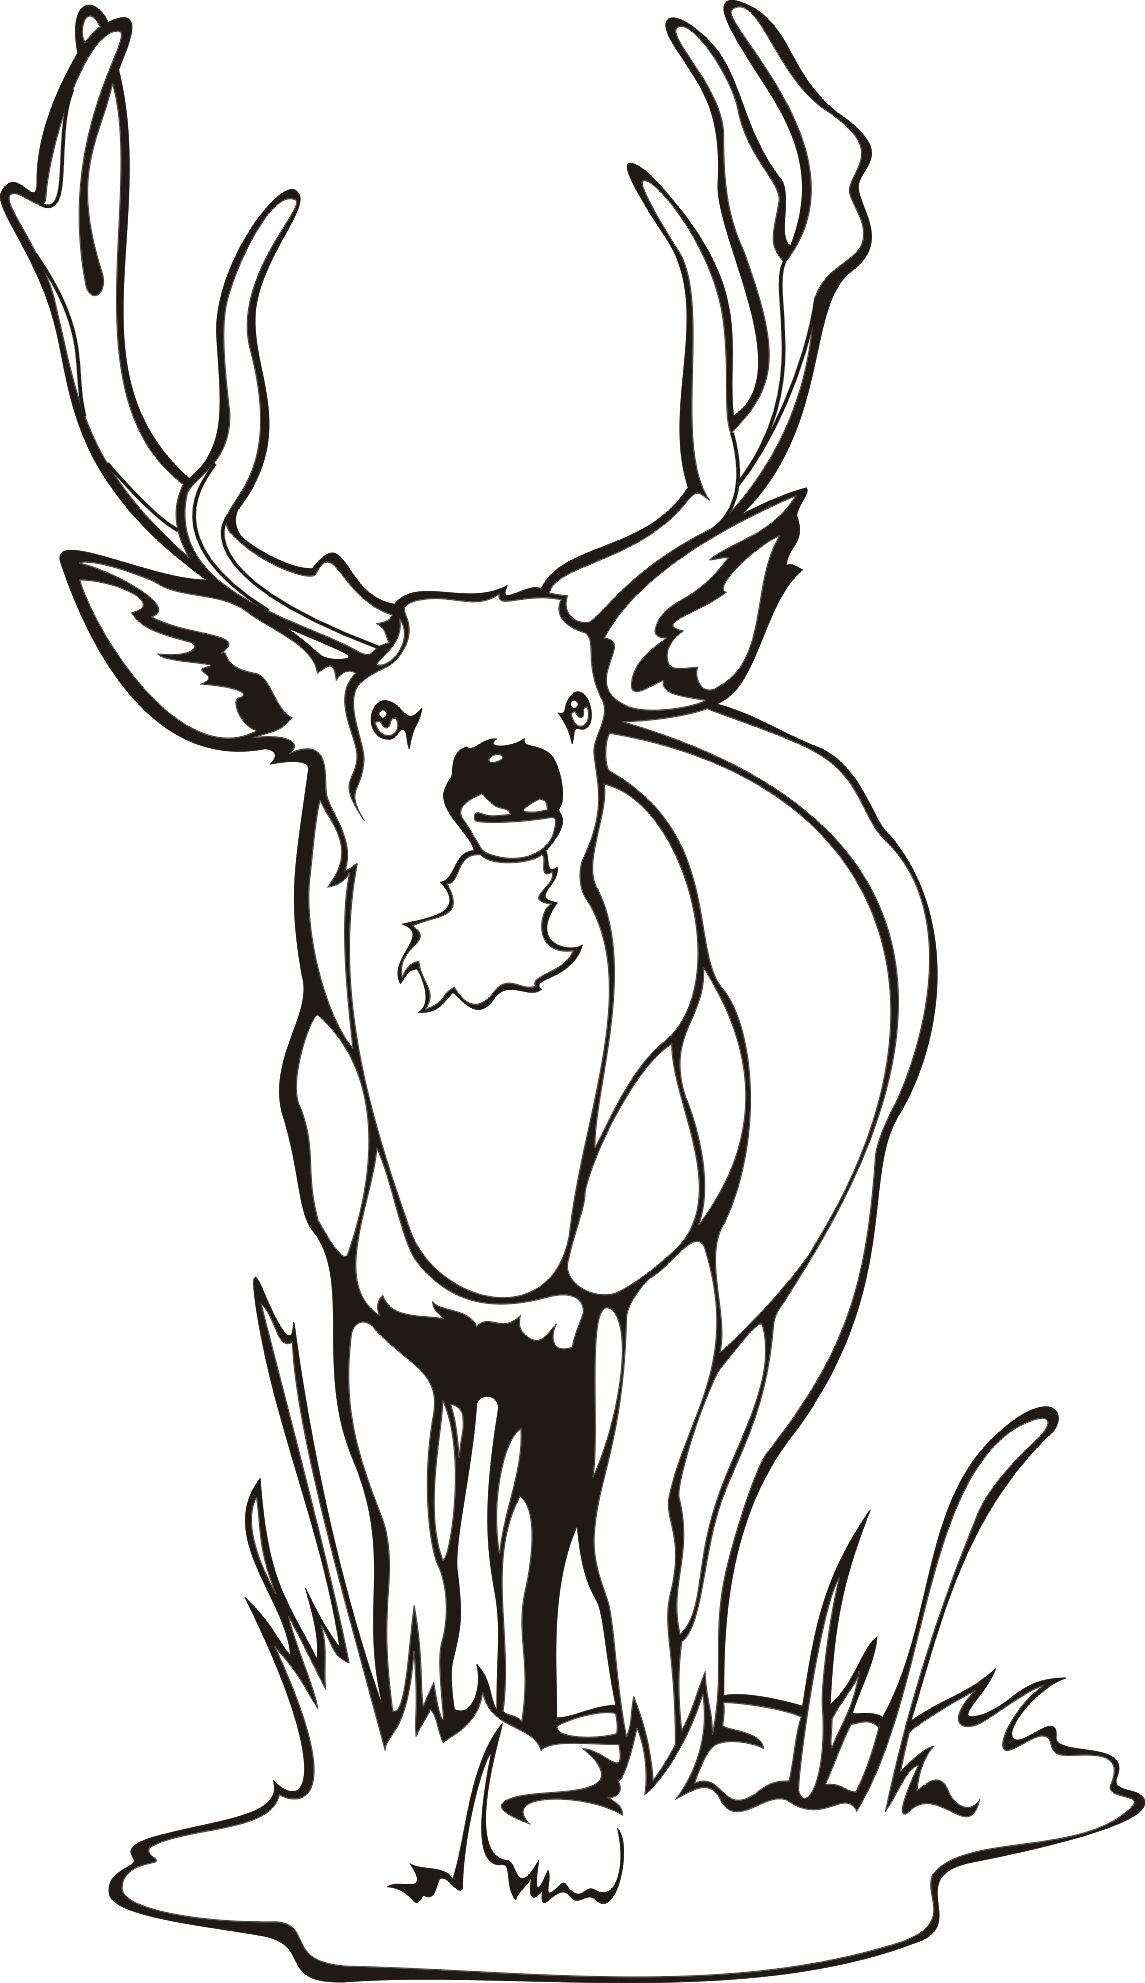 Deer coloring pages http://amazing-coloring-pages.blogspot.com/2007 ...